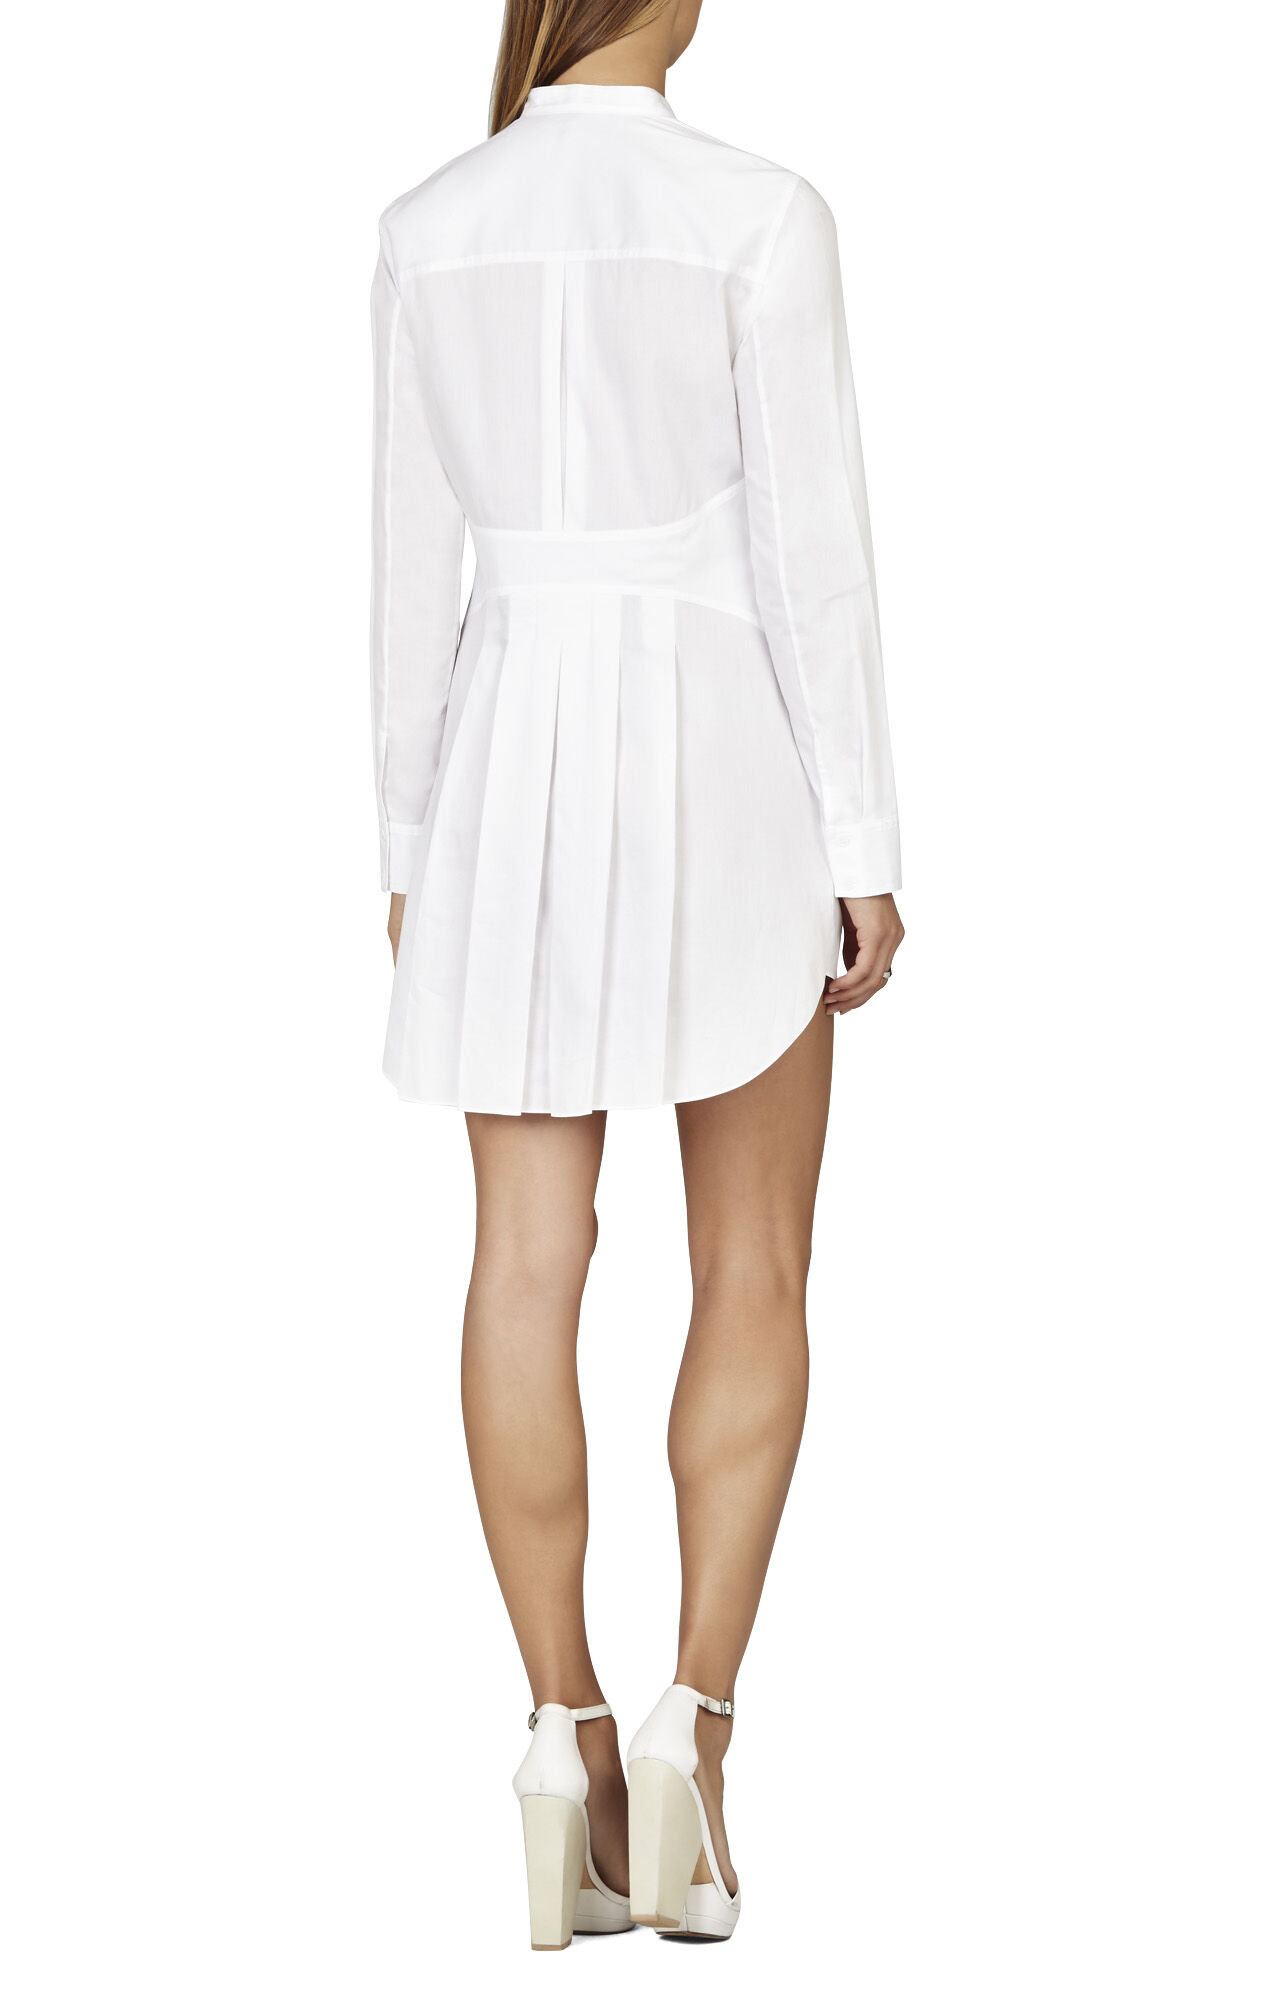 BCBGMAXAZRIA Casie Pleated-Back Tuxedo Shirt Dress | BCBG.com